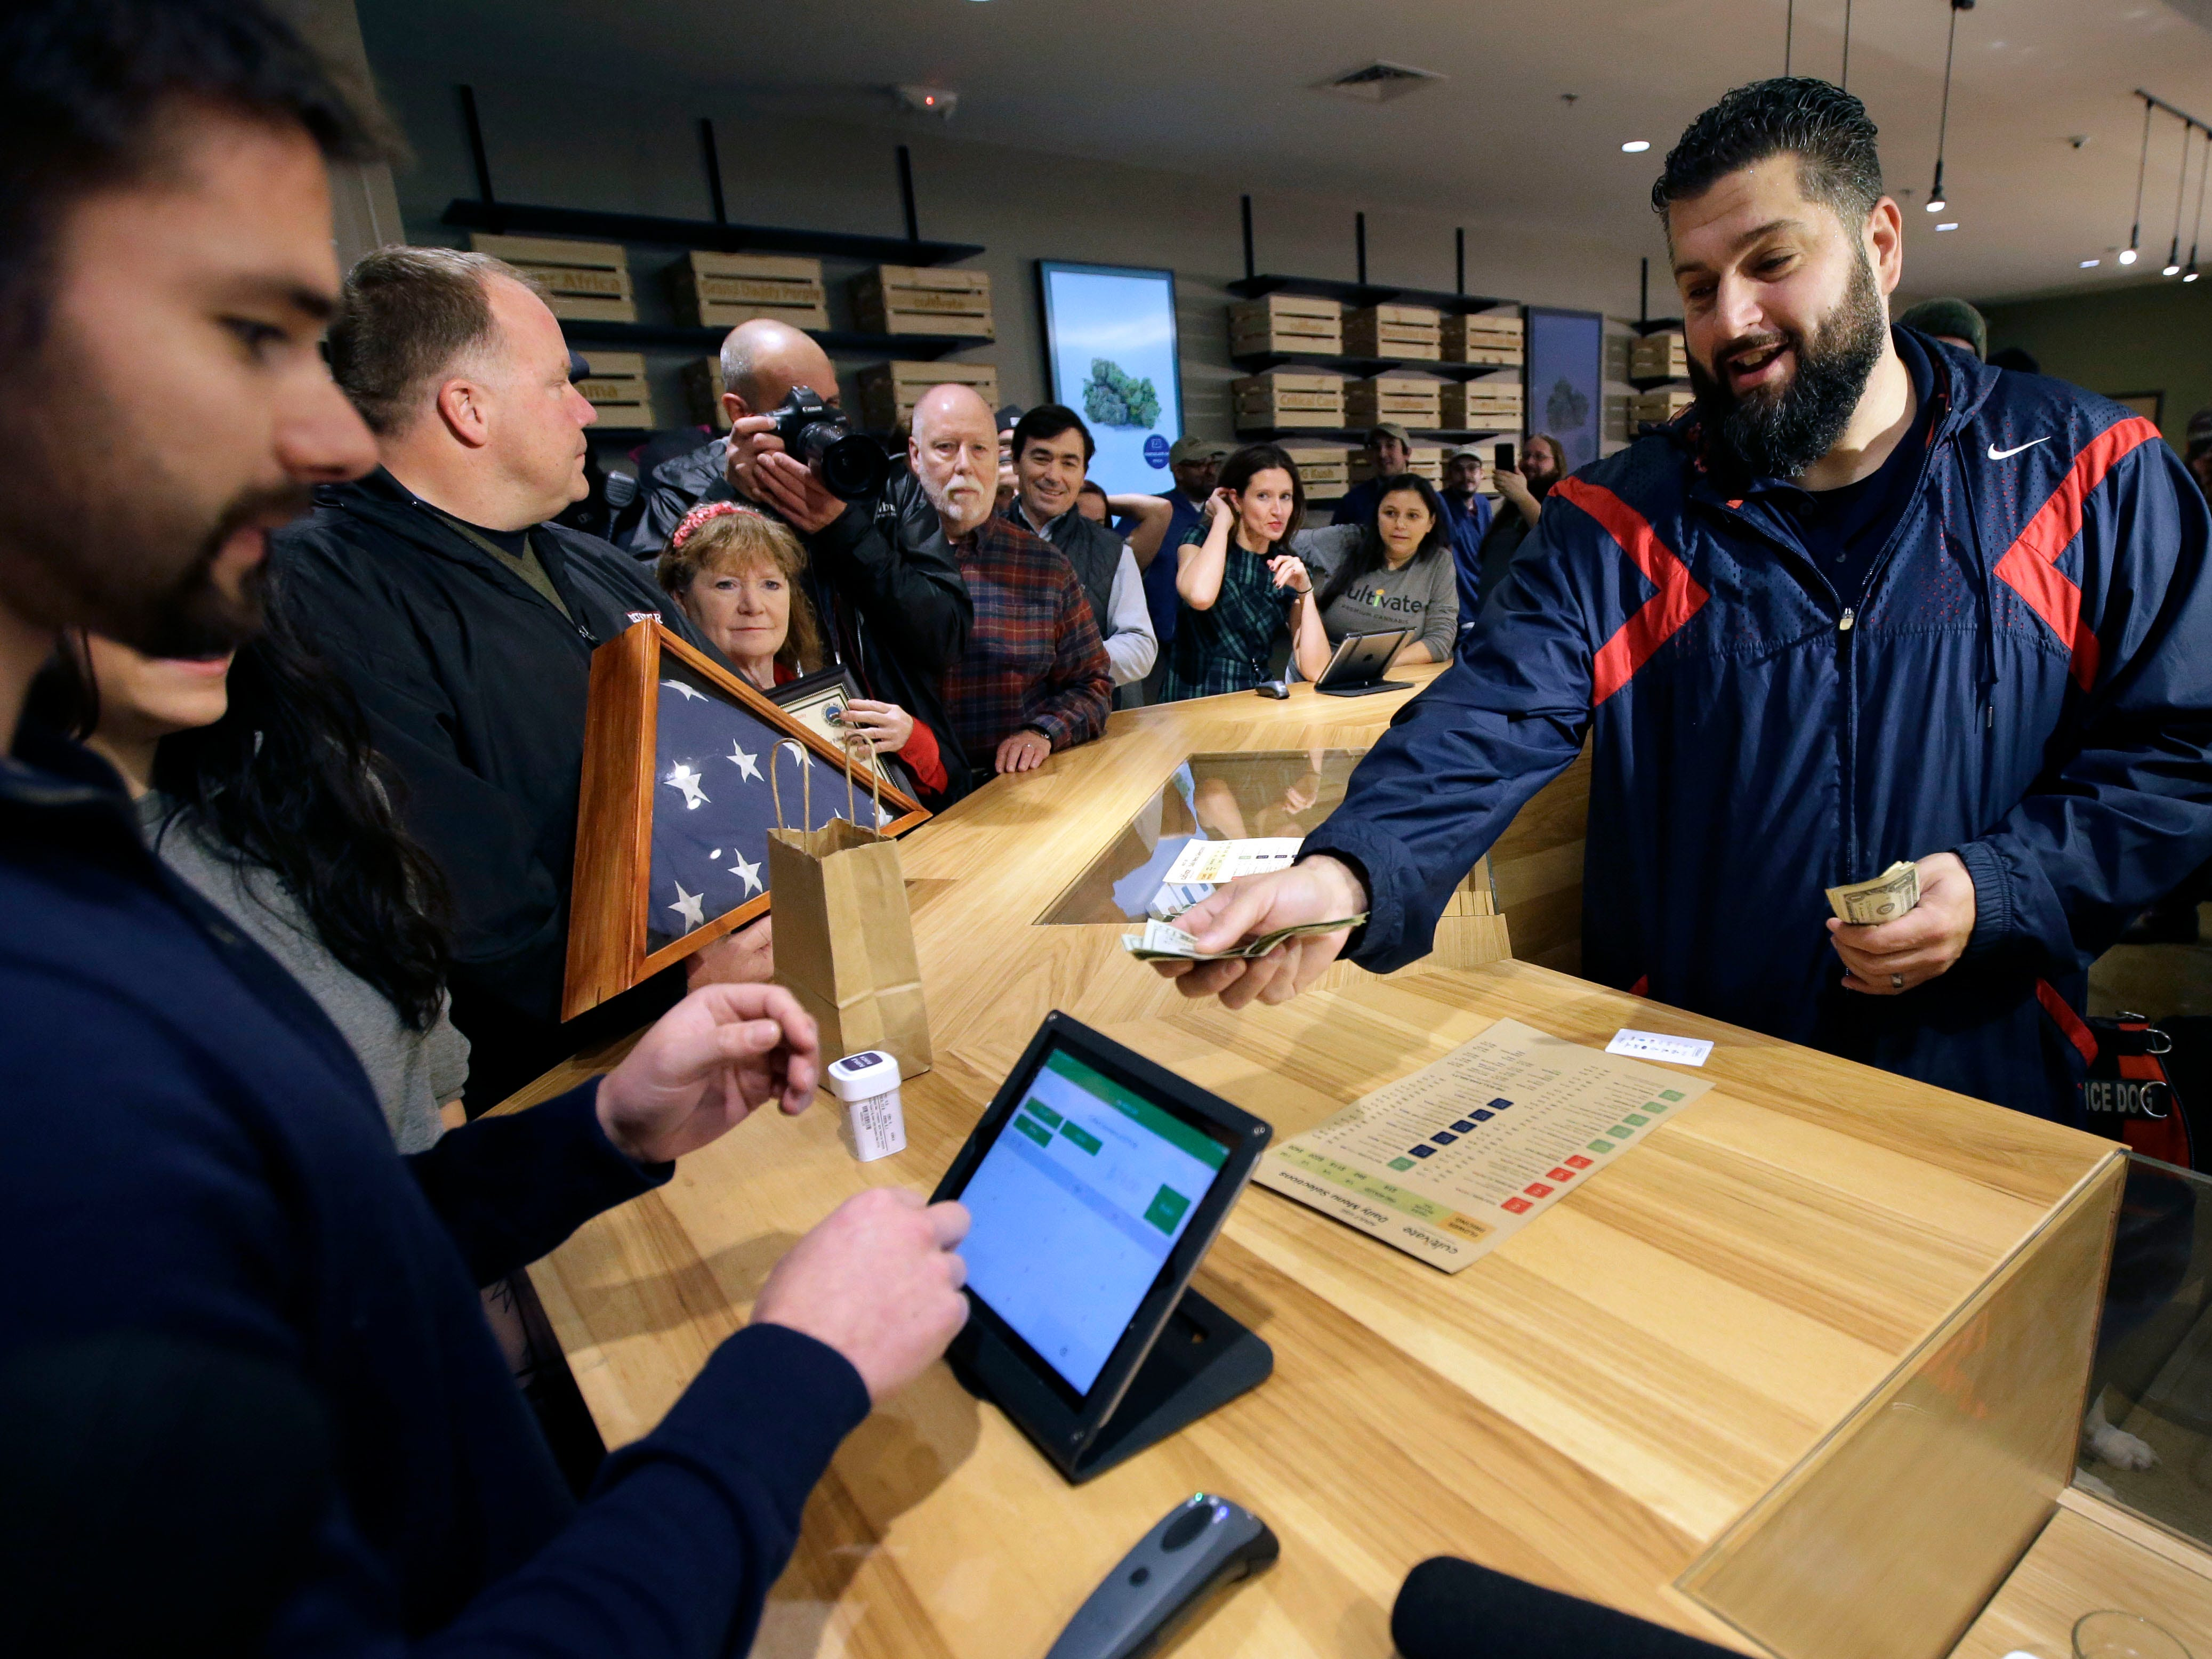 Stephen Mandile, right, an Iraq War veteran from Uxbridge, Mass., is the first to purchase recreational marijuana at the Cultivate dispensary on the first day of legal sales, Tuesday, Nov. 20, 2018, in Leicester, Mass. Cultivate is one of the first two shops permitted to sell recreational marijuana in the eastern United States, more than two years after Massachusetts voters approved it in 2016.